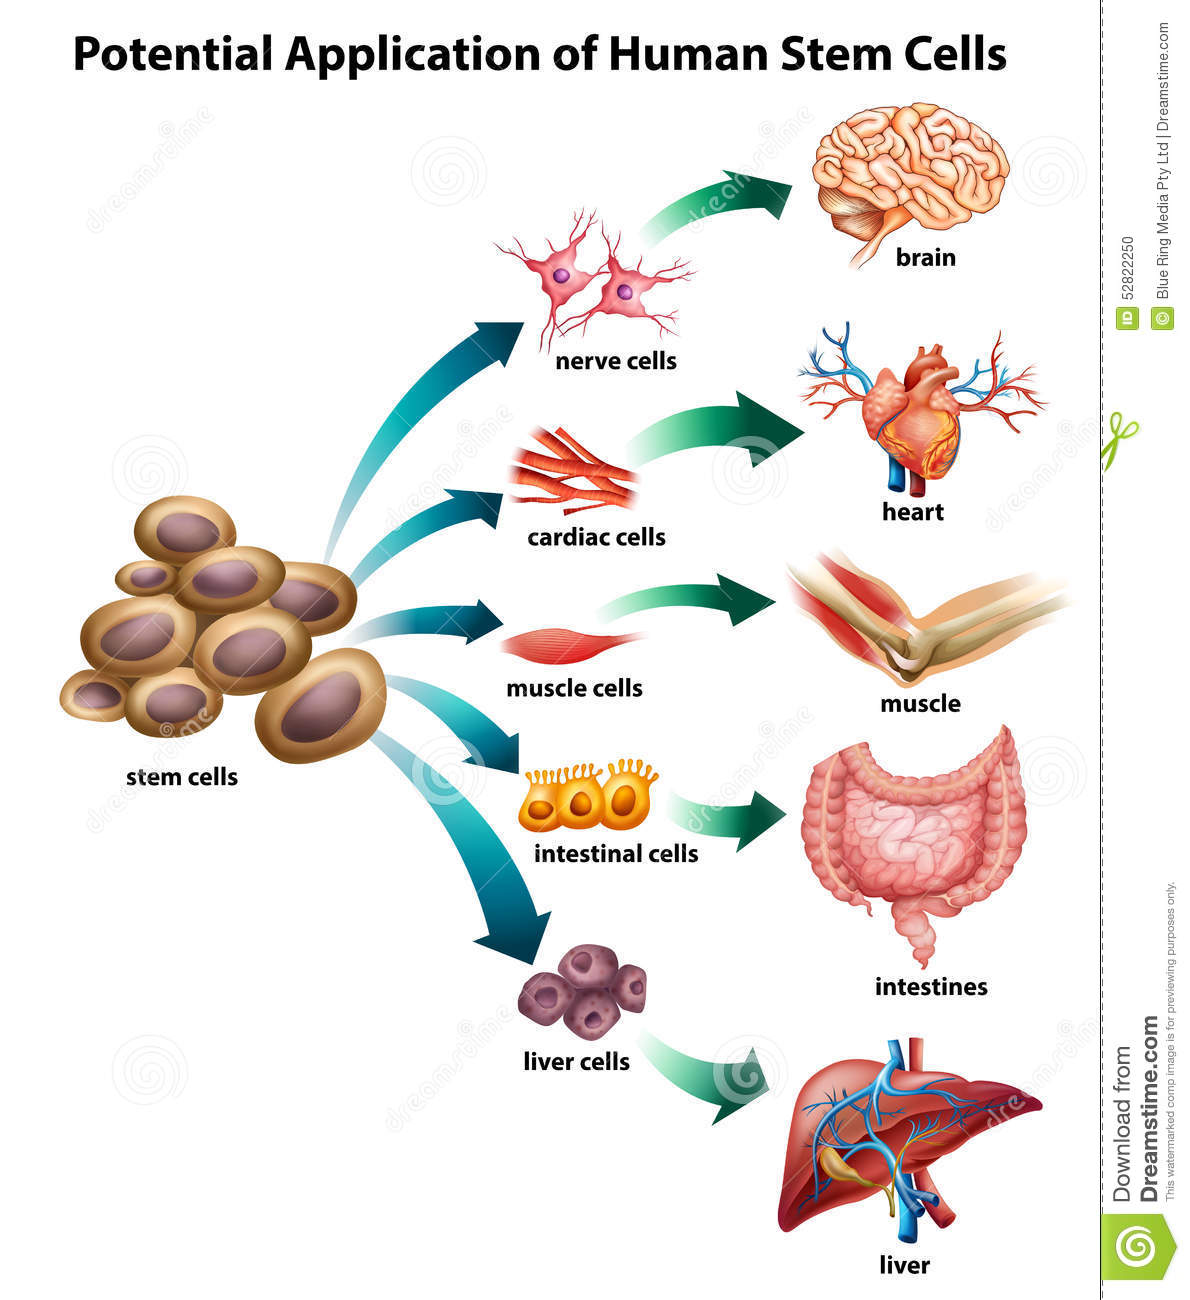 one application of stem cells